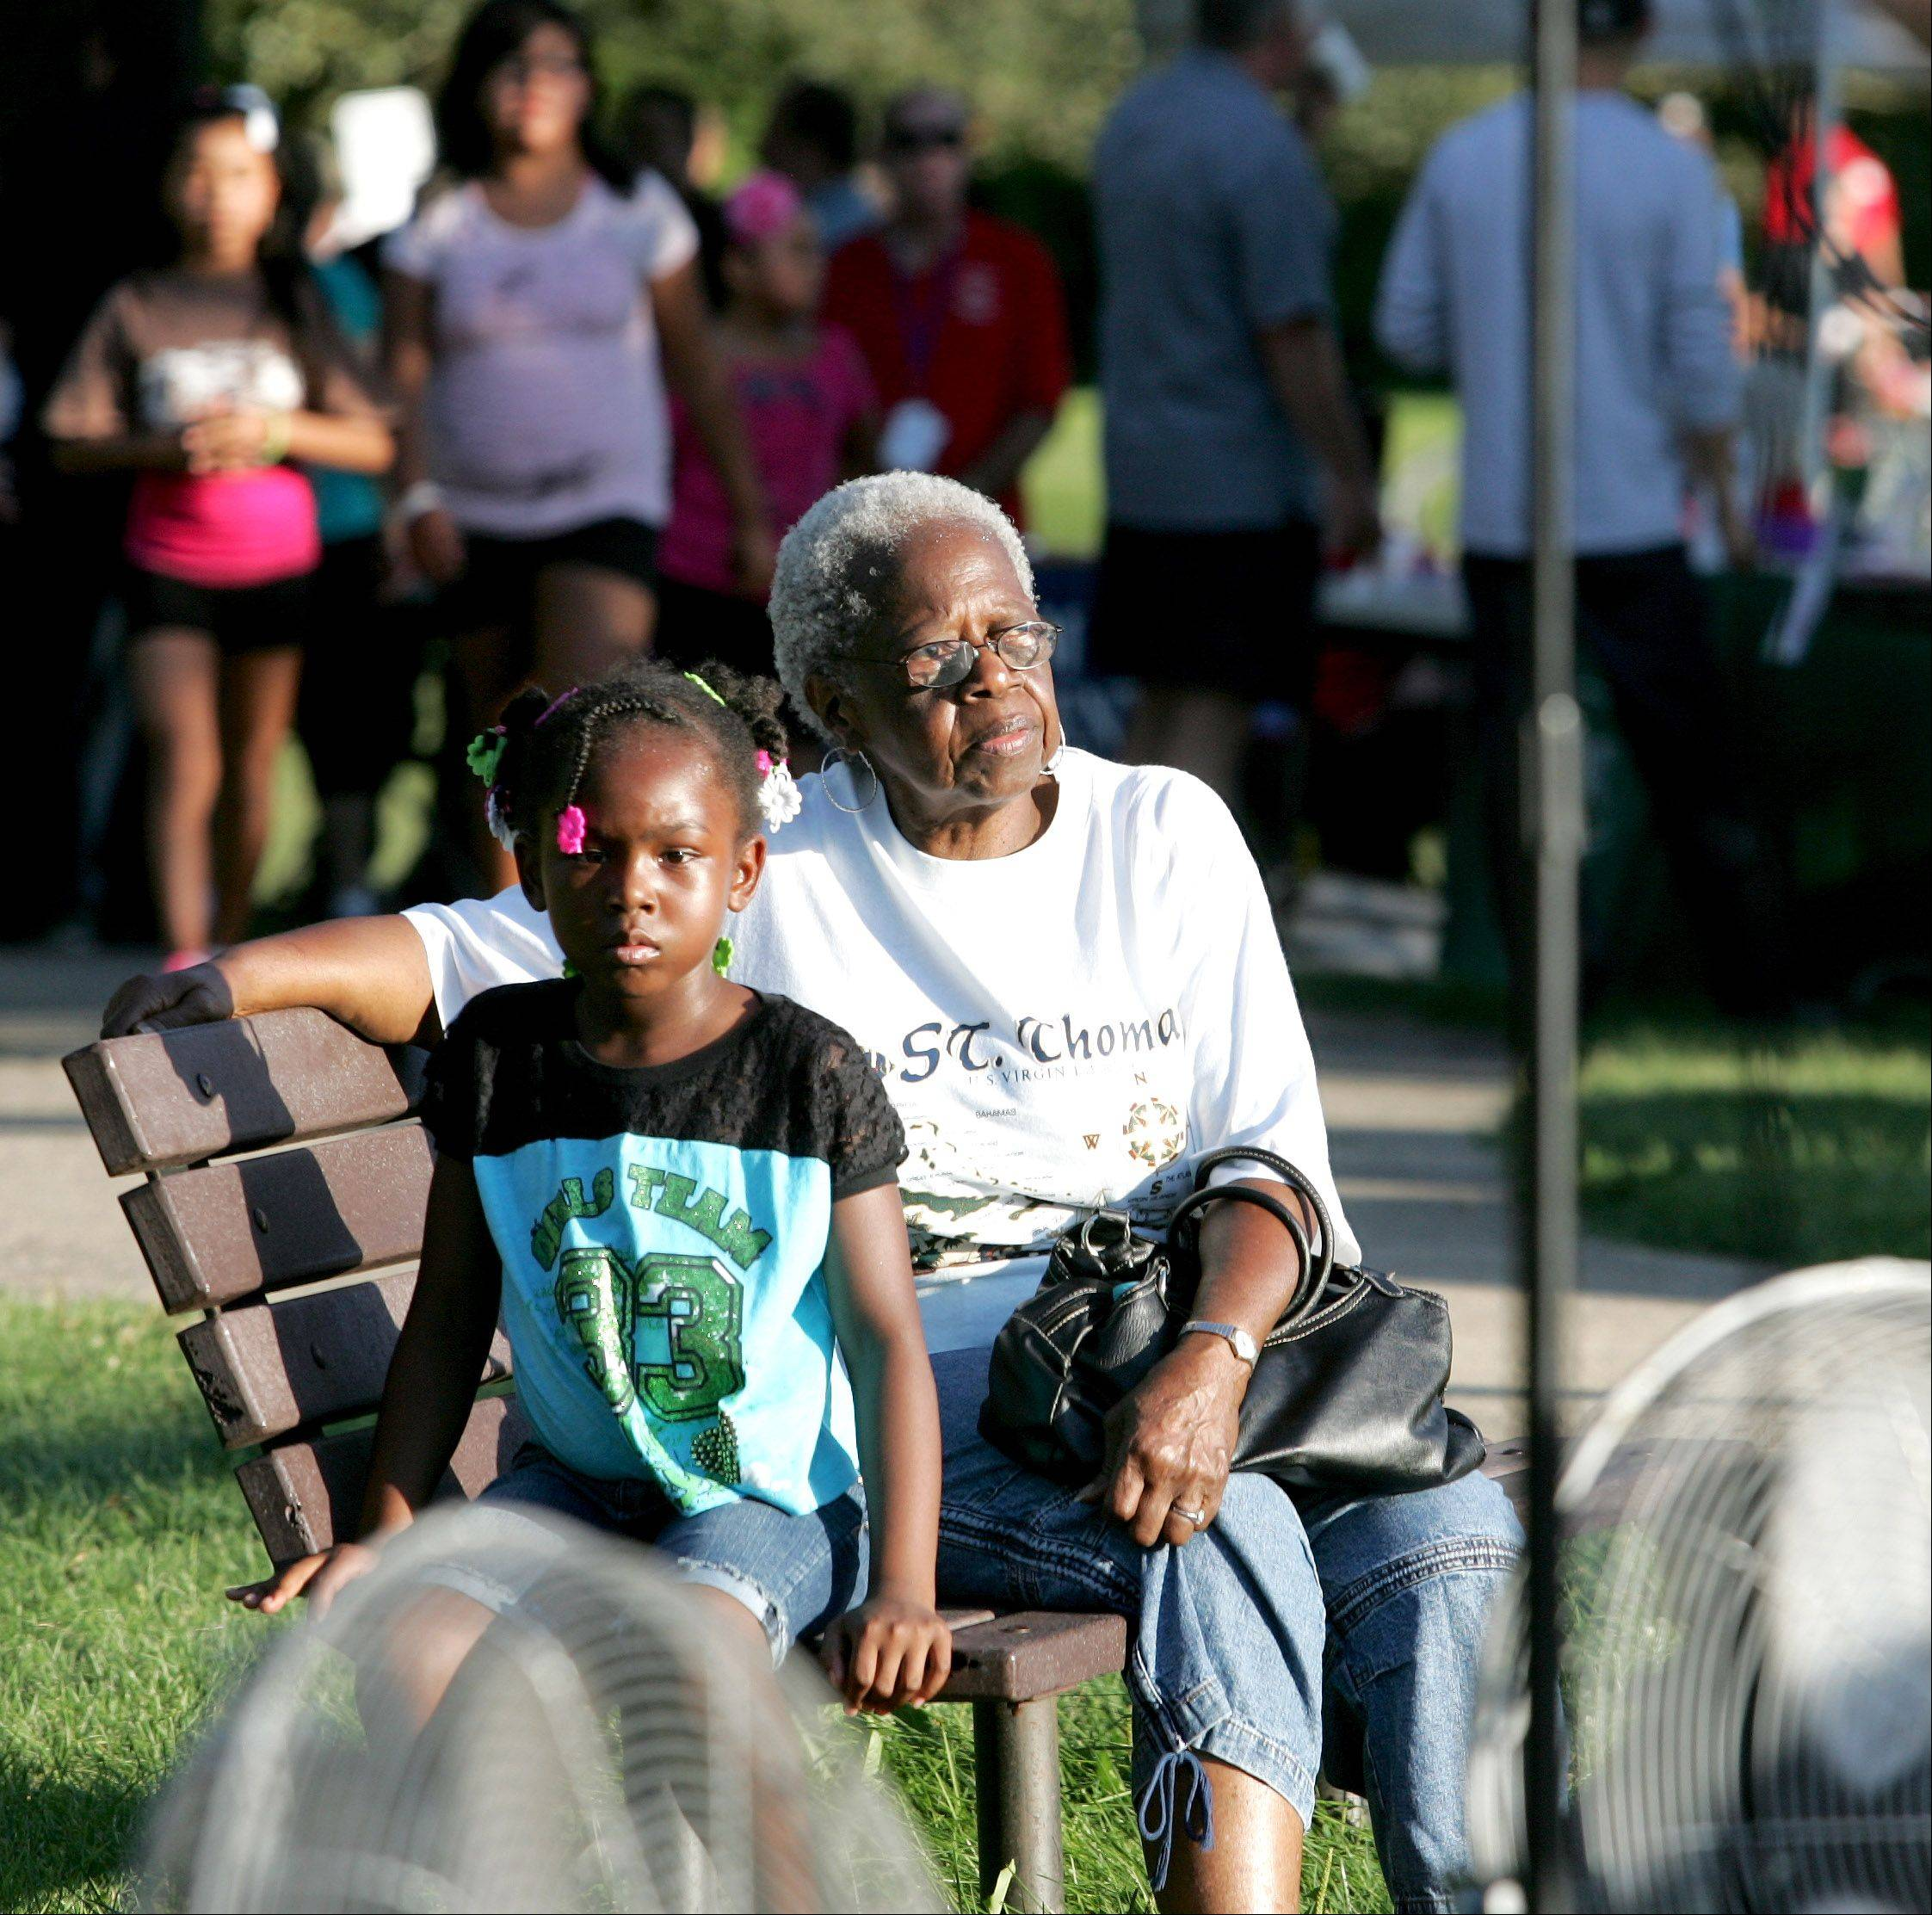 Lucille Moore of Carol Stream and her great-granddaughter, Jamee Clements, 6, listen to the band Serendipity during National Night Out at Community Park in Carol Stream on Tuesday.